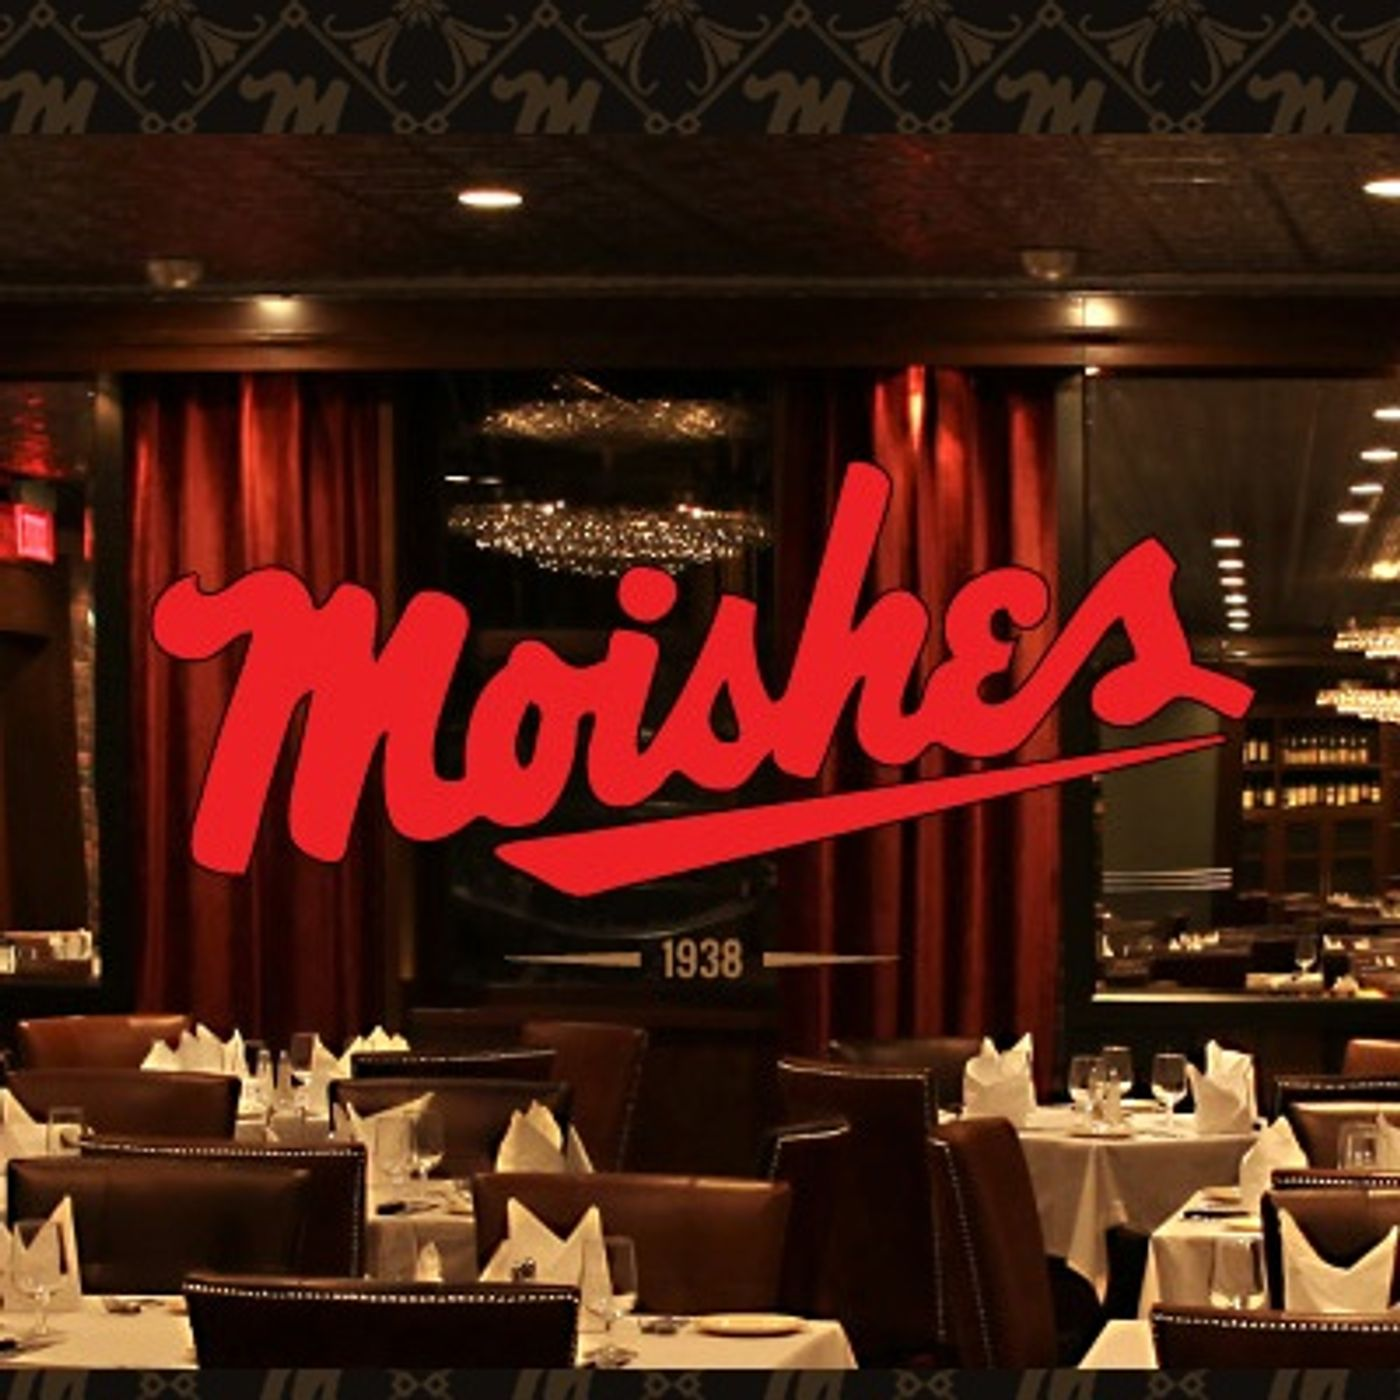 Episode 125: Moishes